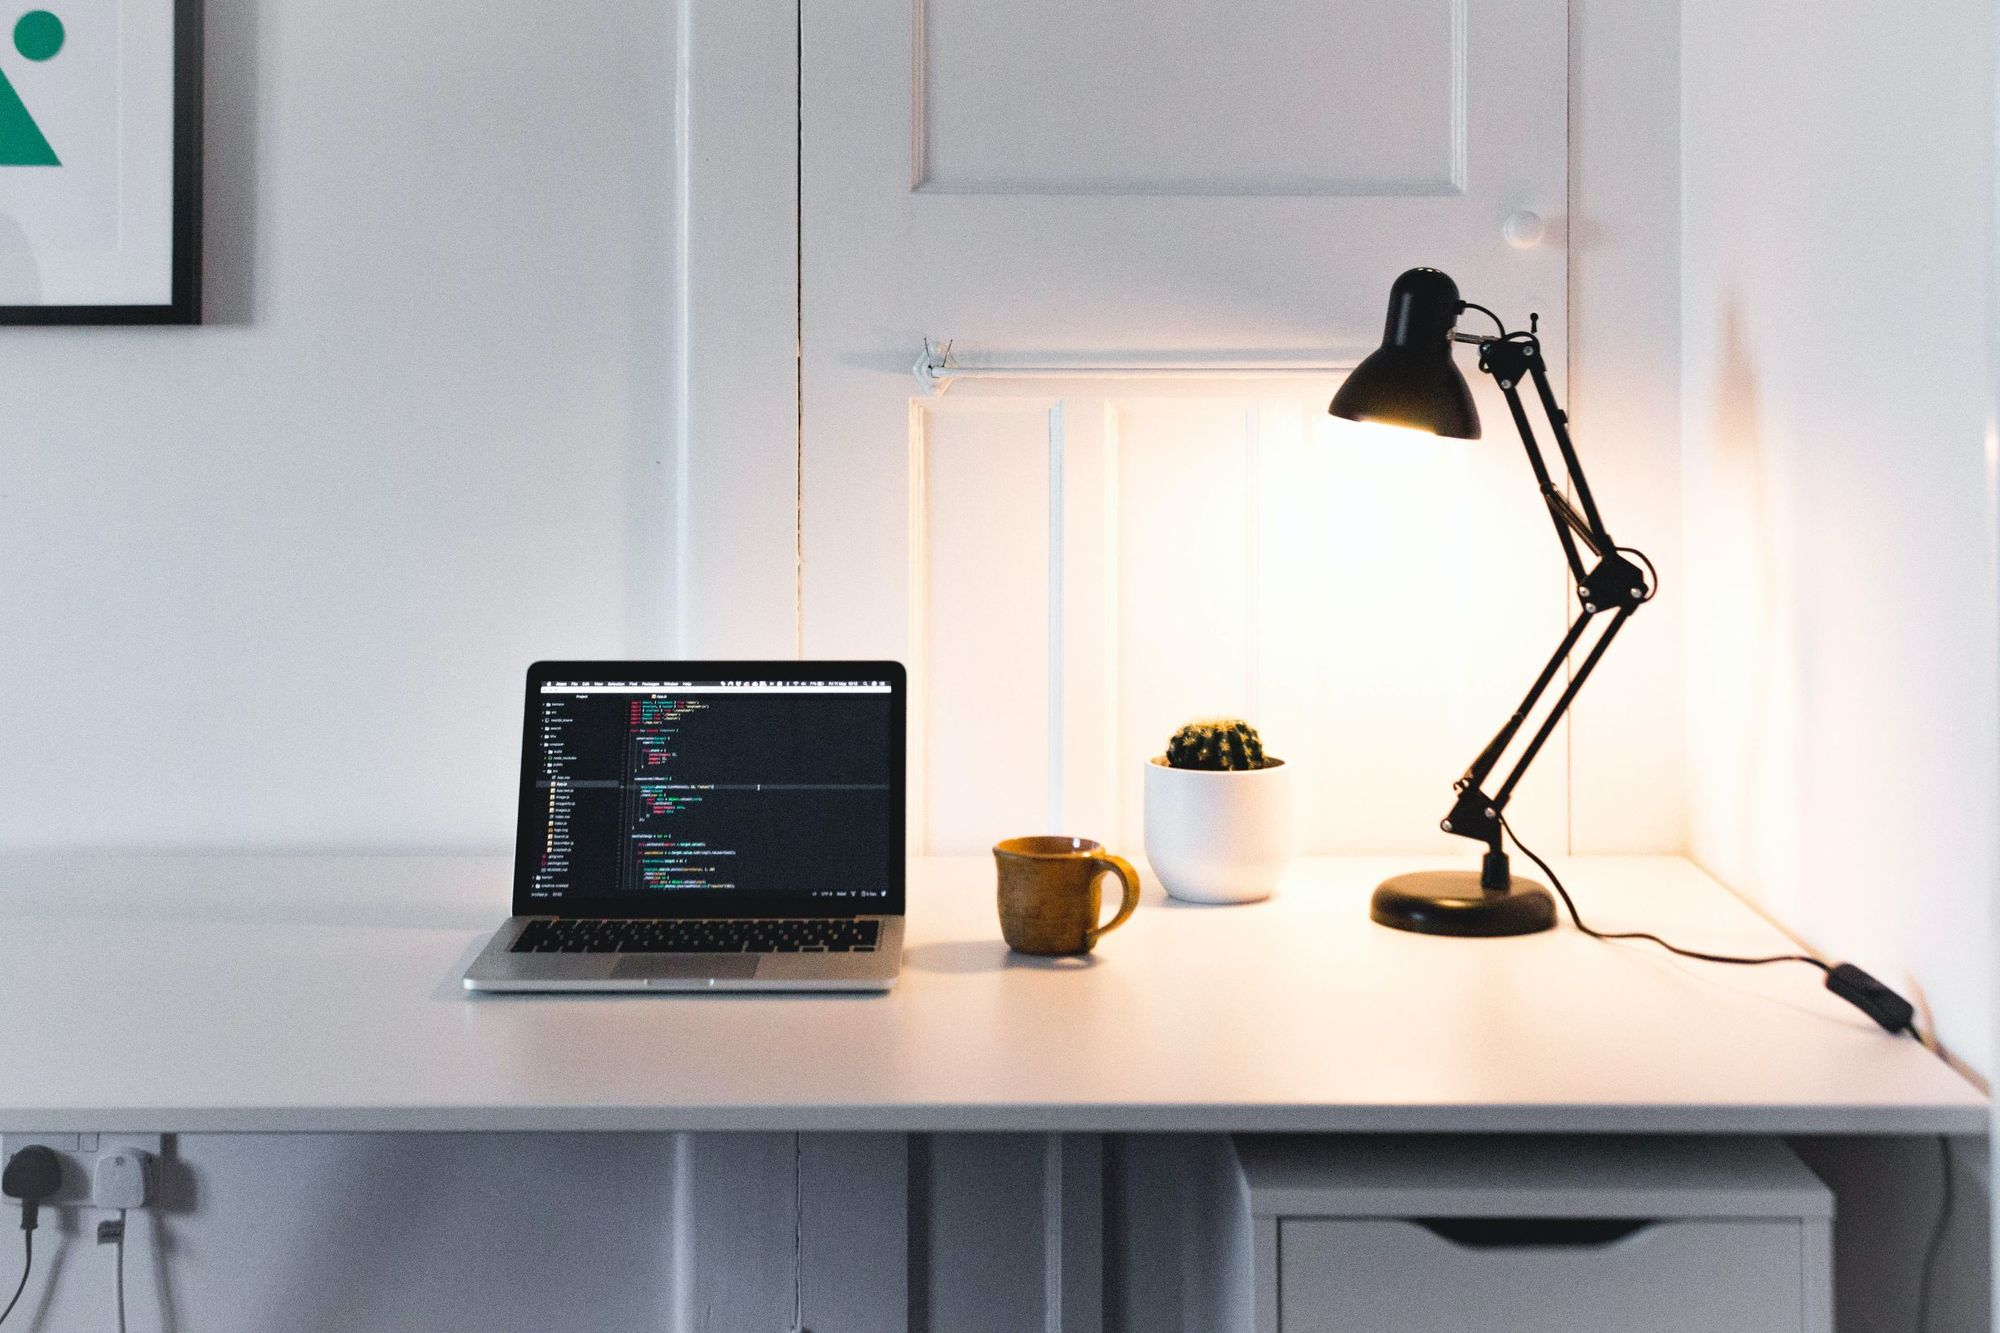 Desk with laptop, lamp, plant and coffee. A working environment